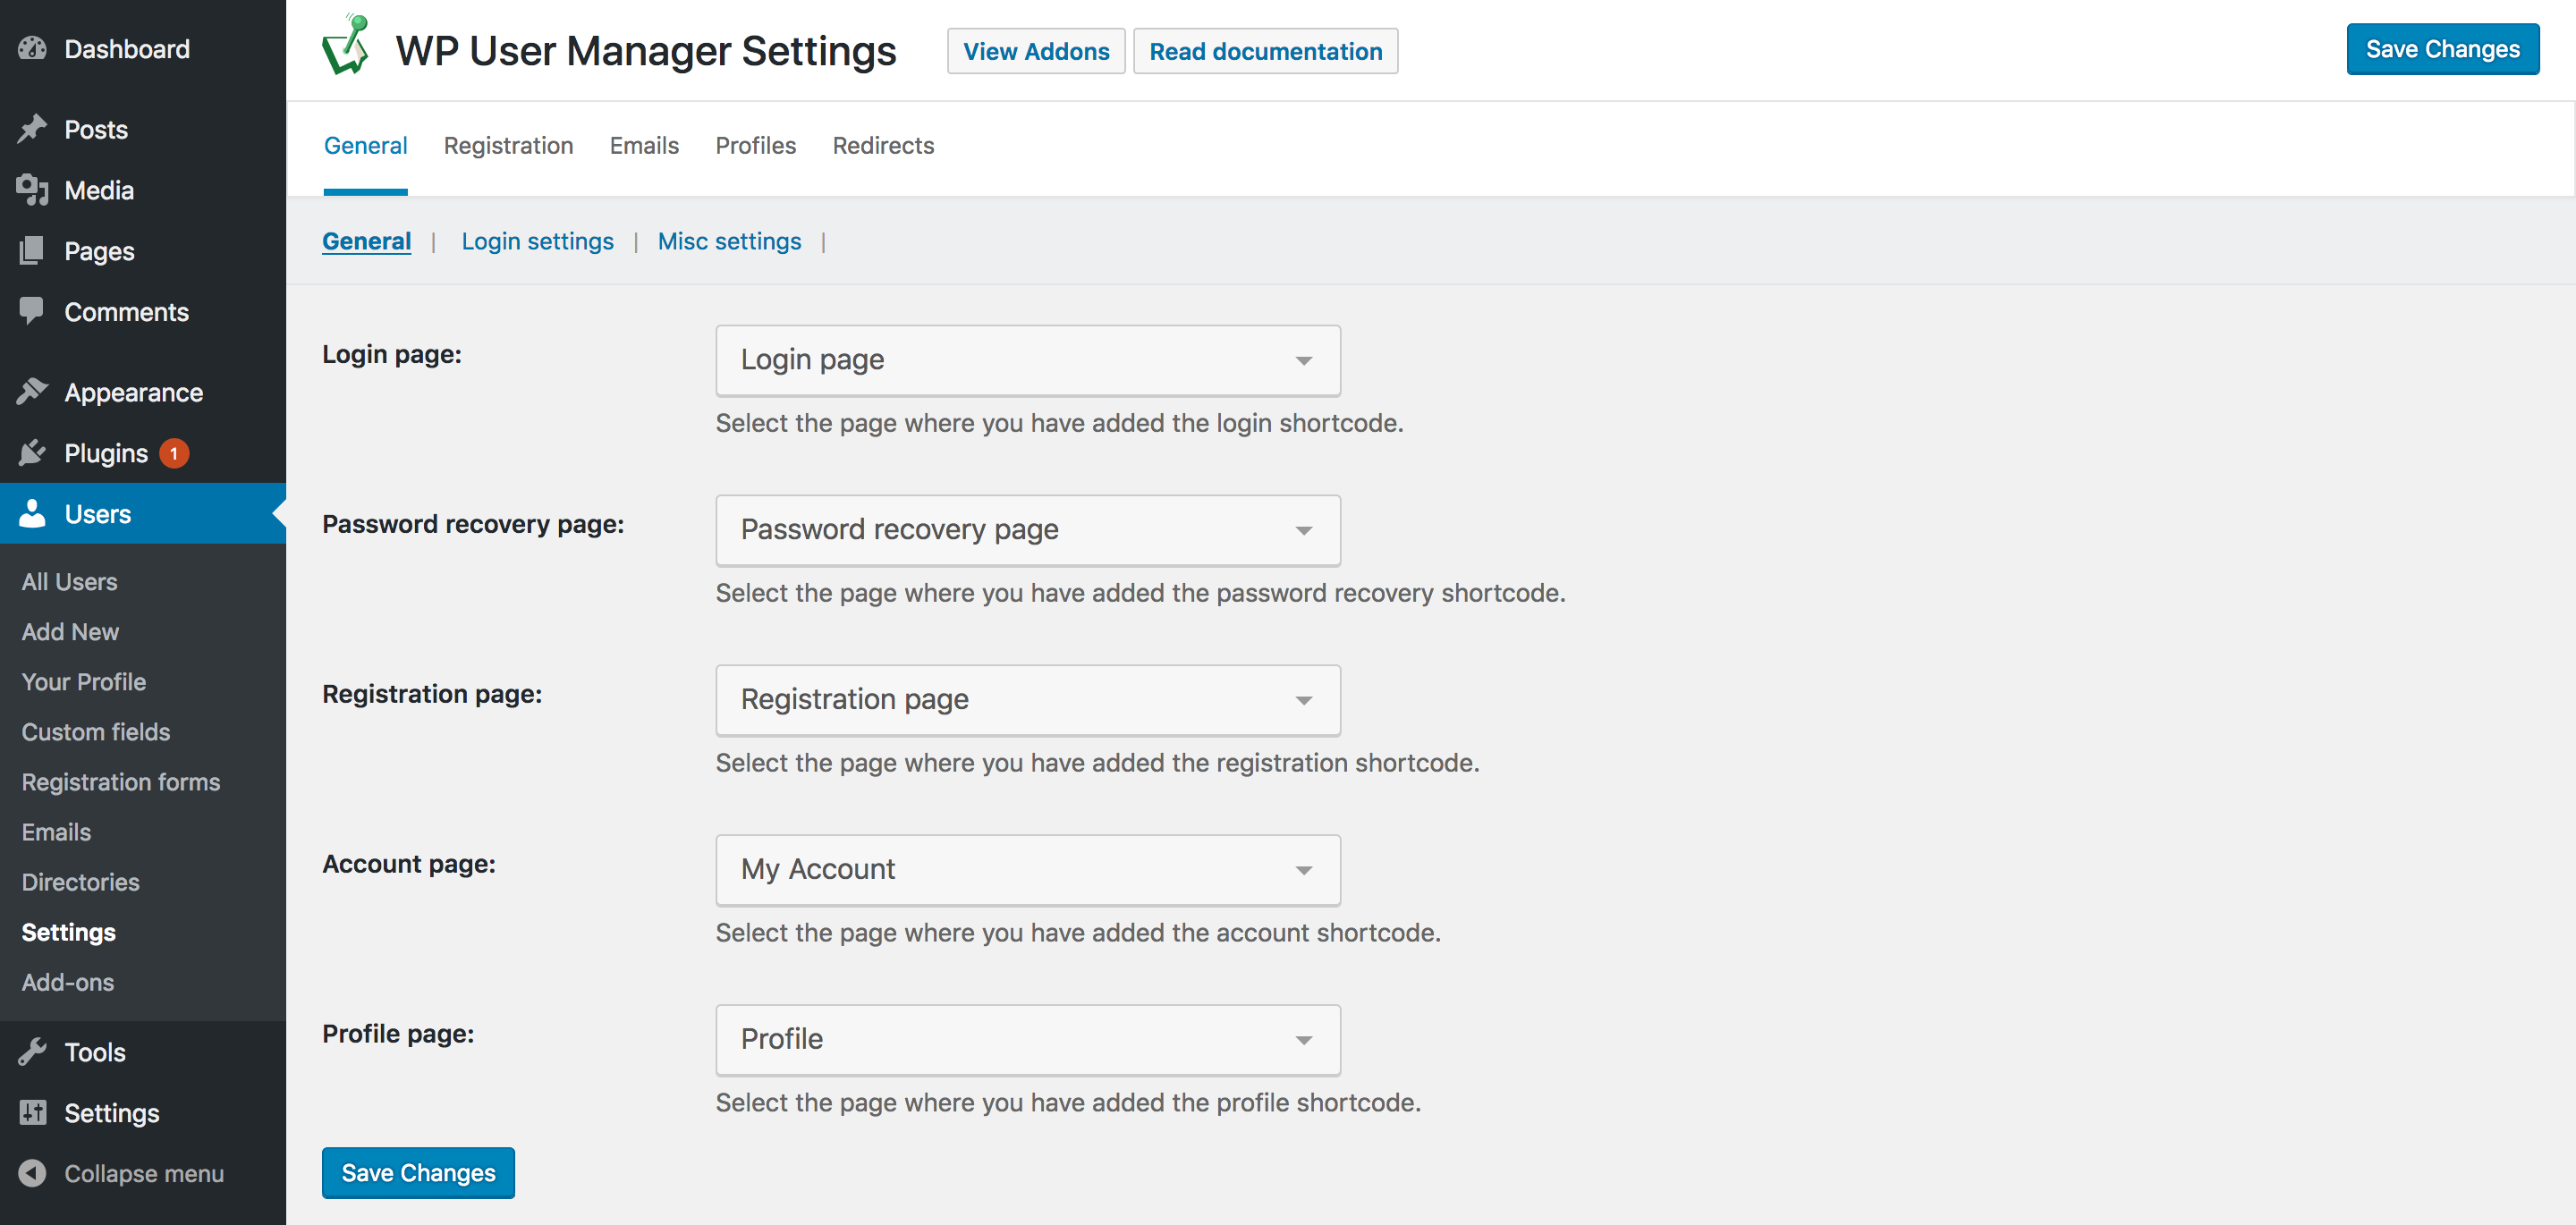 WP User Manager 2.0.0 settings panel